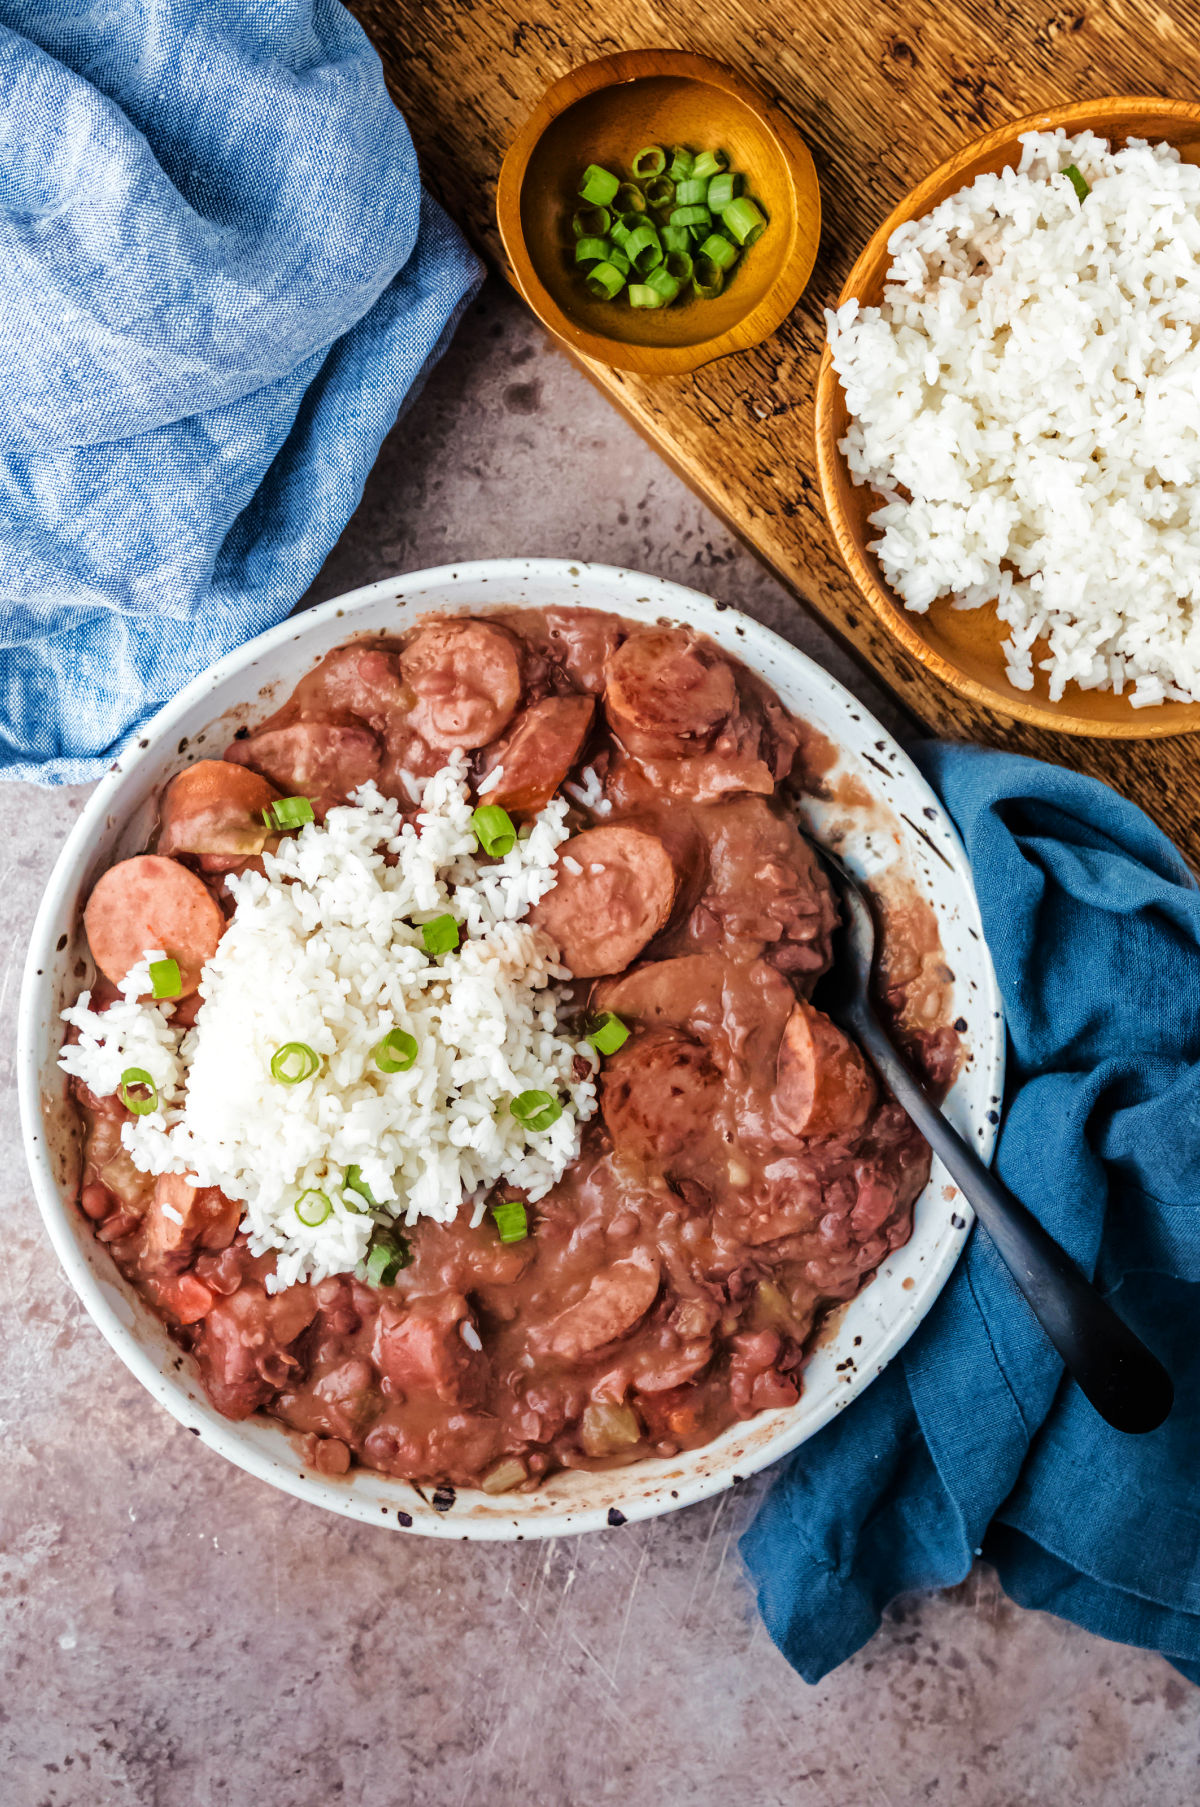 Plate of red beans and rice next to a bowl of white rice